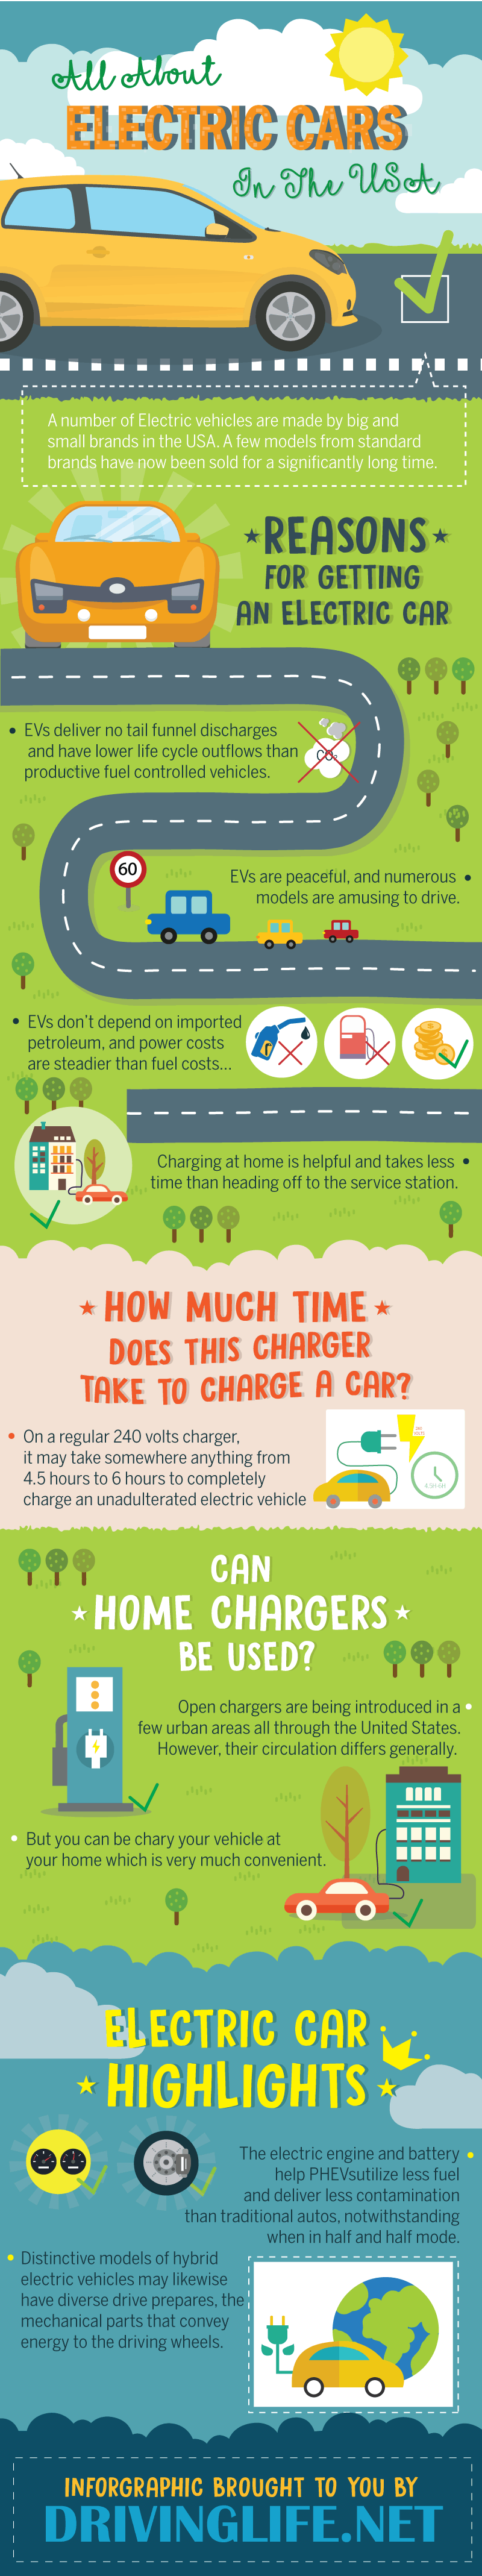 All About Electric Cars In The USA infographic